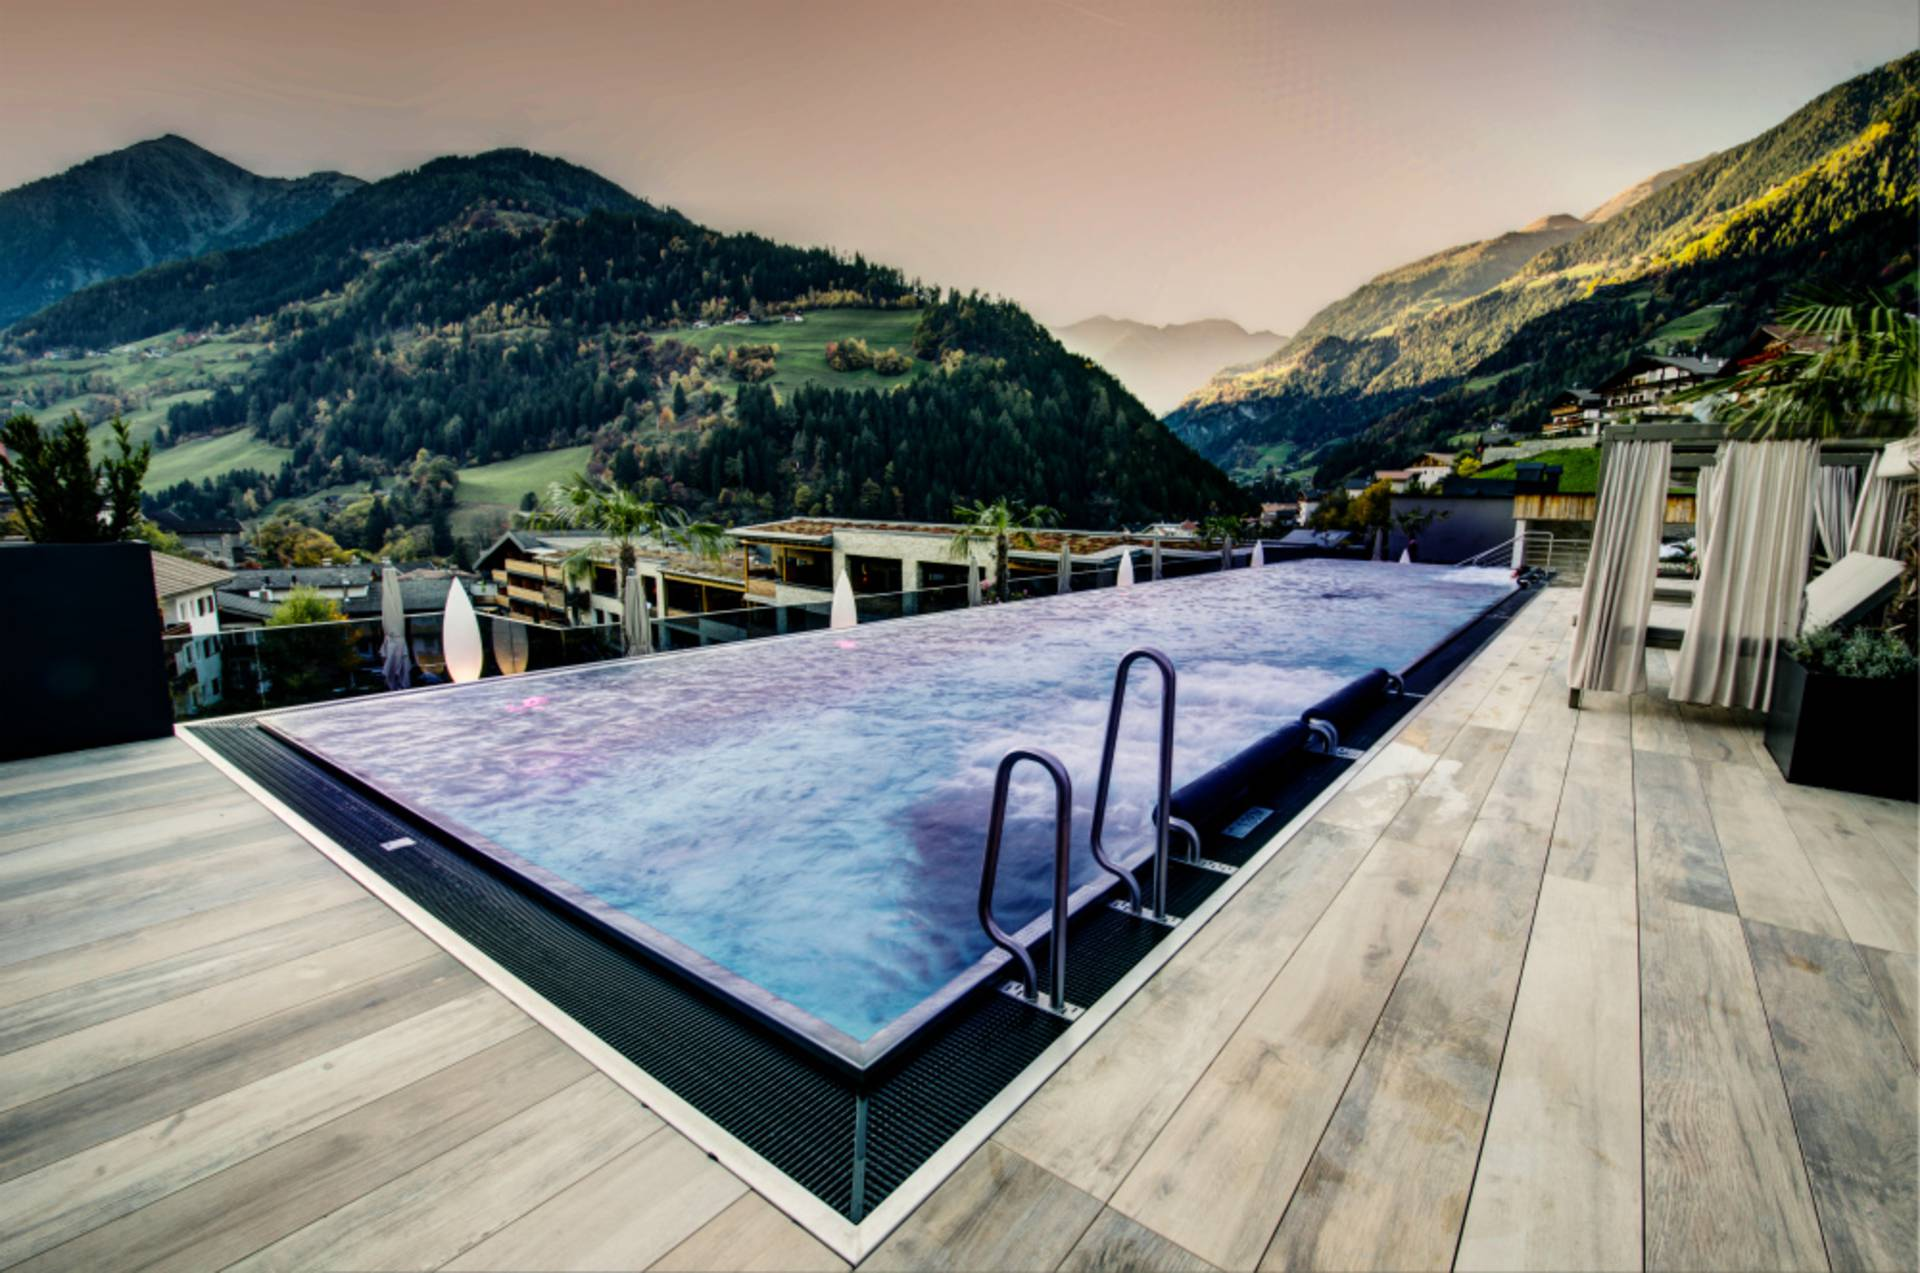 Ferienwohnung Südtirol Mit Pool Meran One Highlight In Our Hotel The Infinity Pool